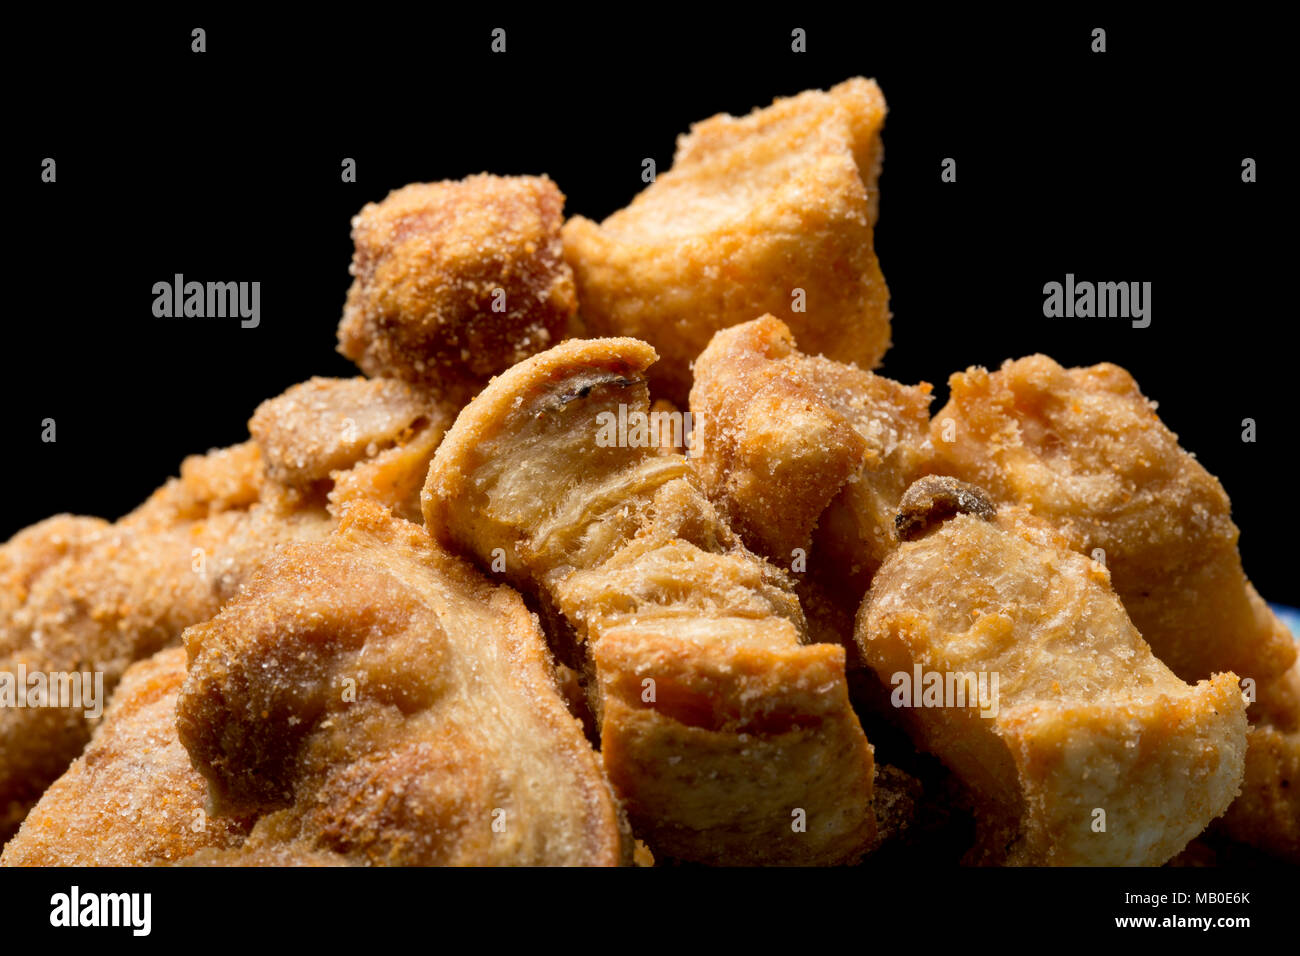 Pork scratchings from a packet bought in a supermarket. UK - Stock Image